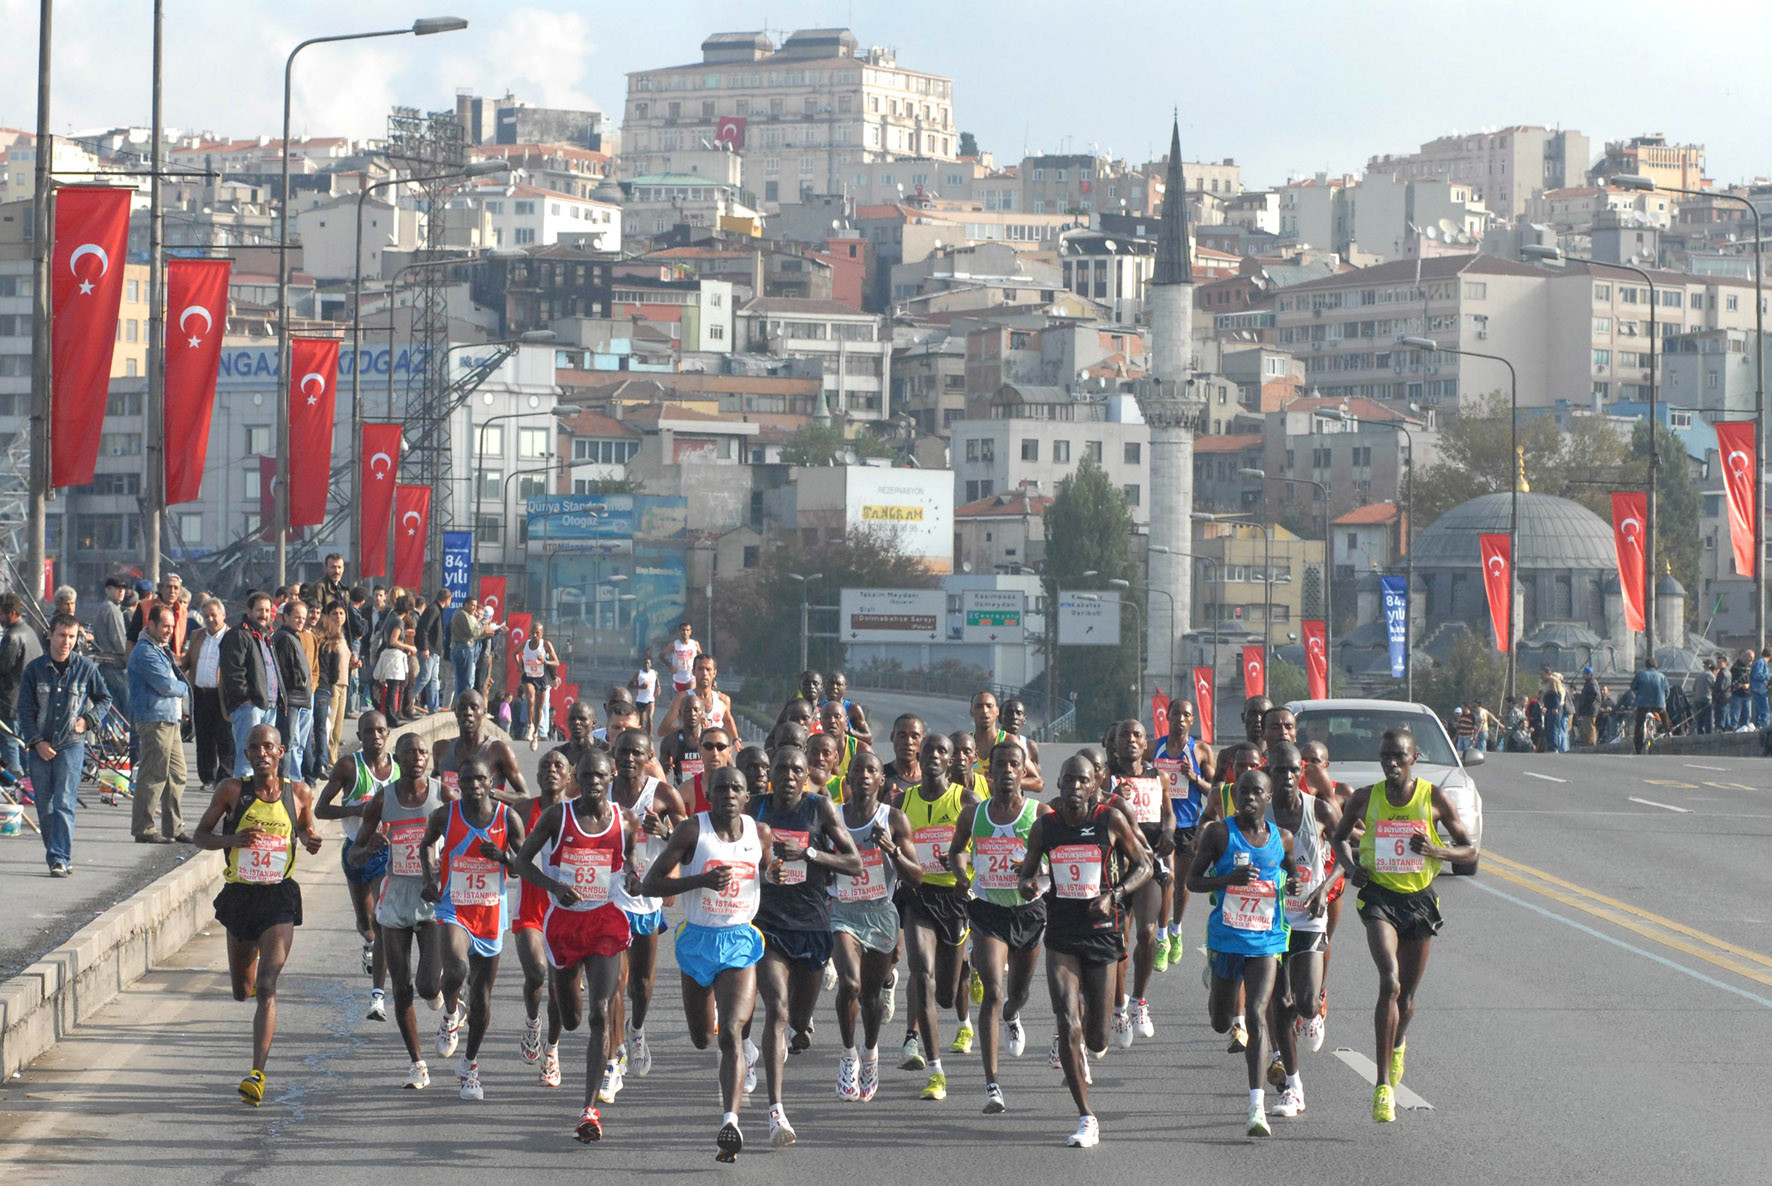 Organizers are expecting a record number of runners at this year's Istanbul Marathon